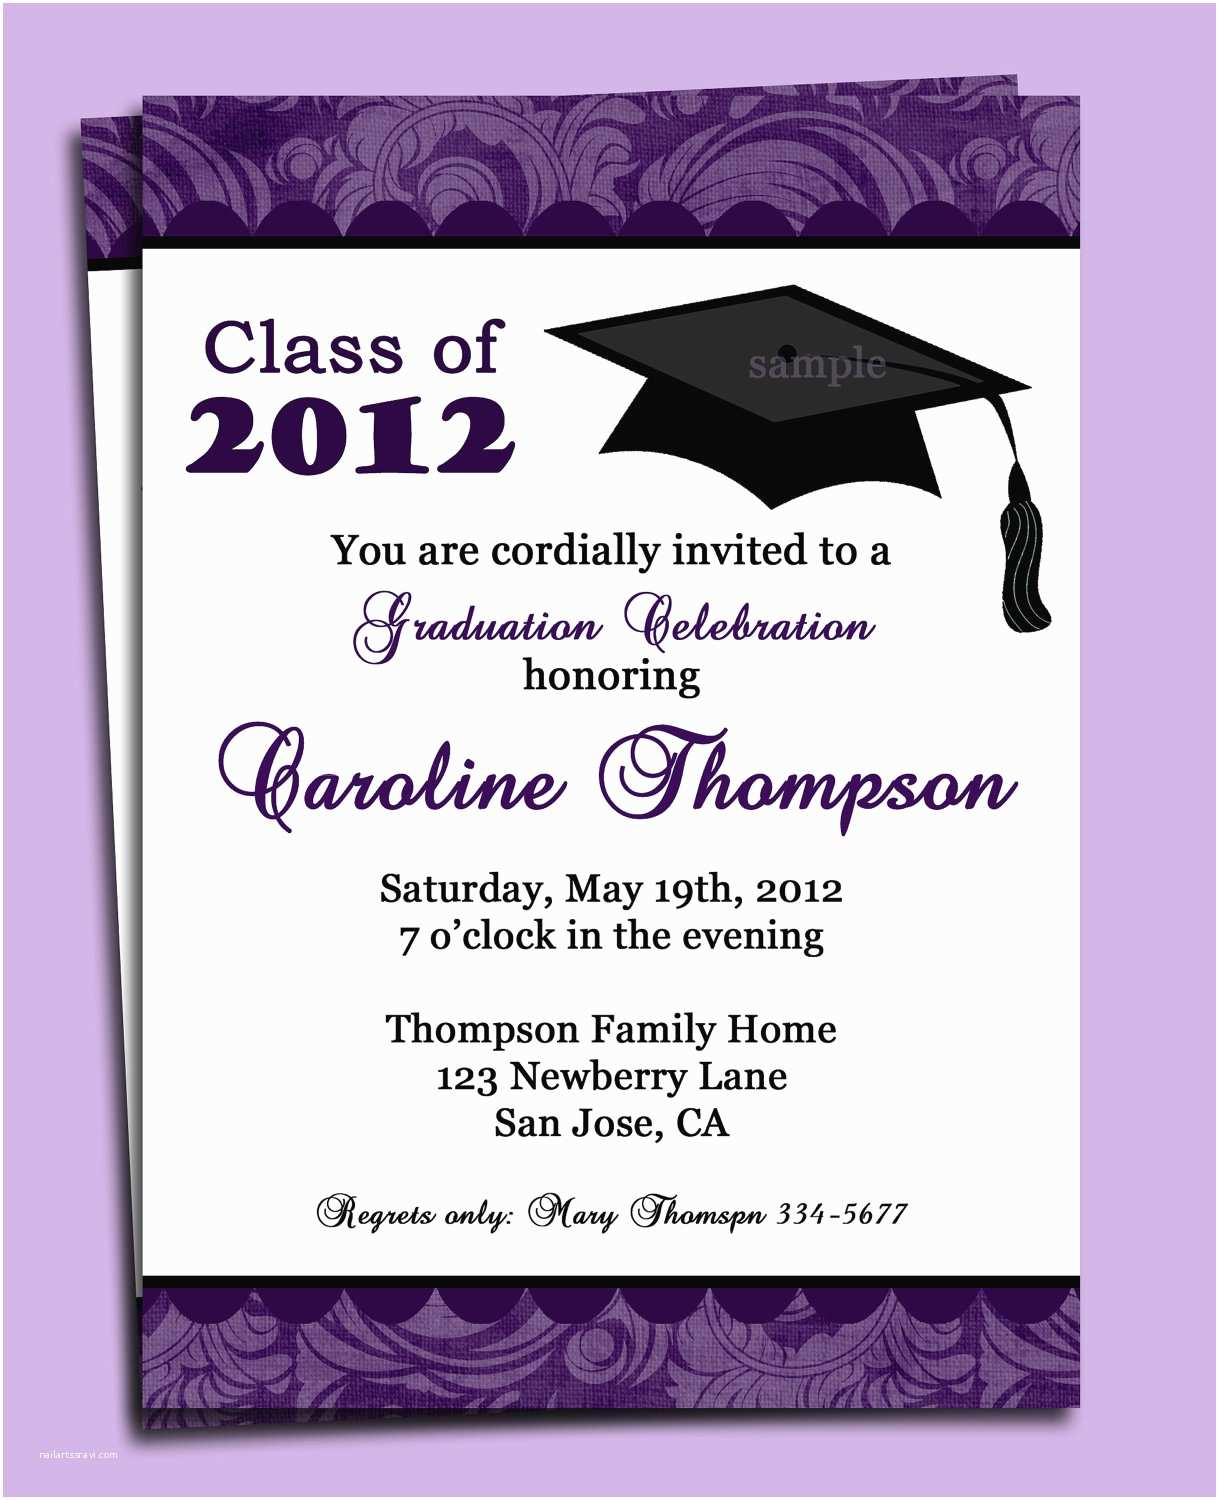 Graduation Party Invitation Ideas Graduation Party Invitation Wording